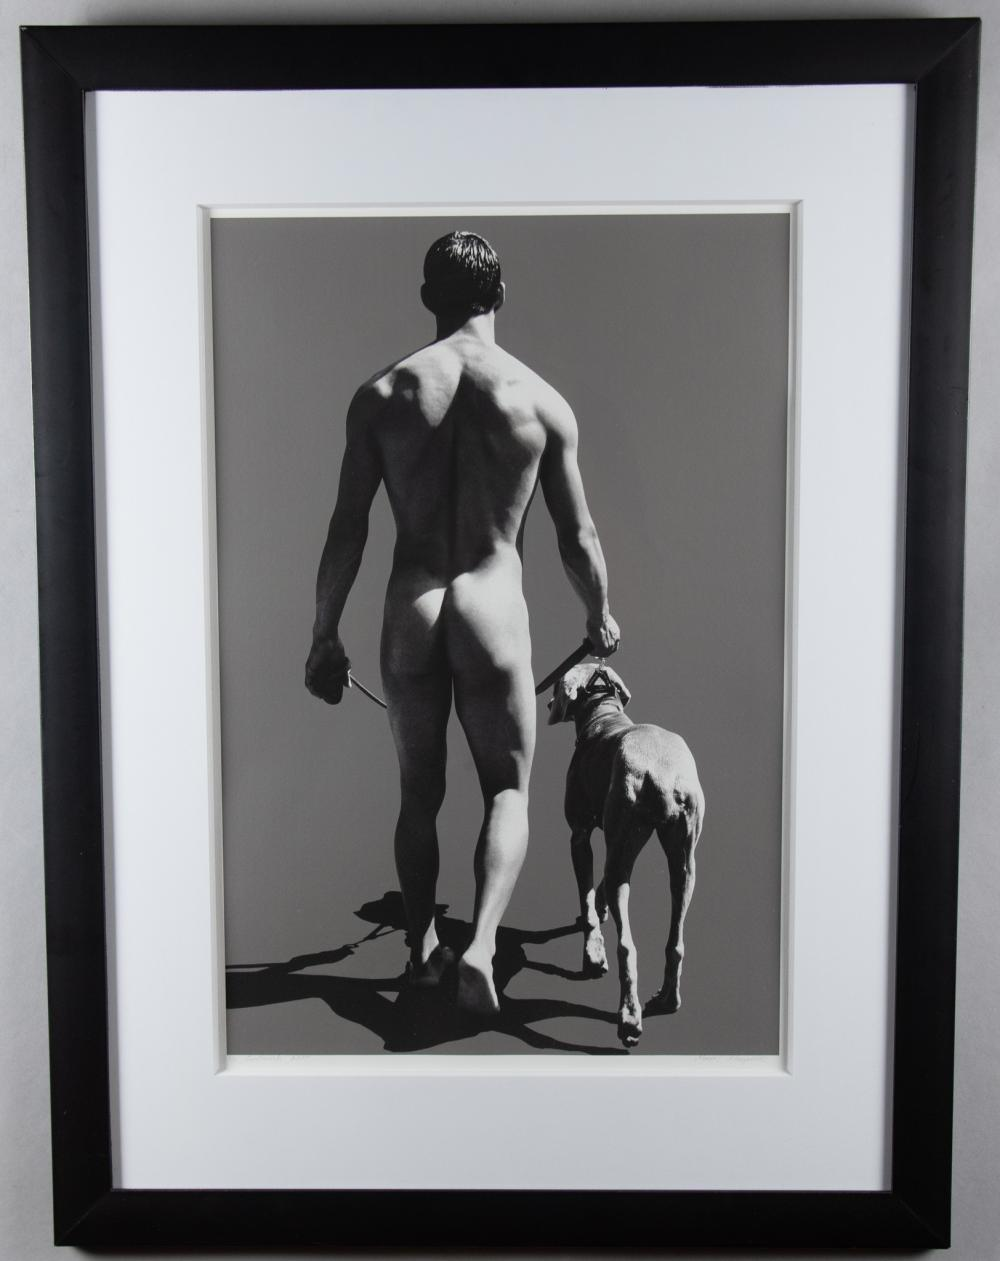 Marcel Morguecilo, 20th / 21st Century, Male Nude and Dog, gelatin silver print, 24 x 16 inches